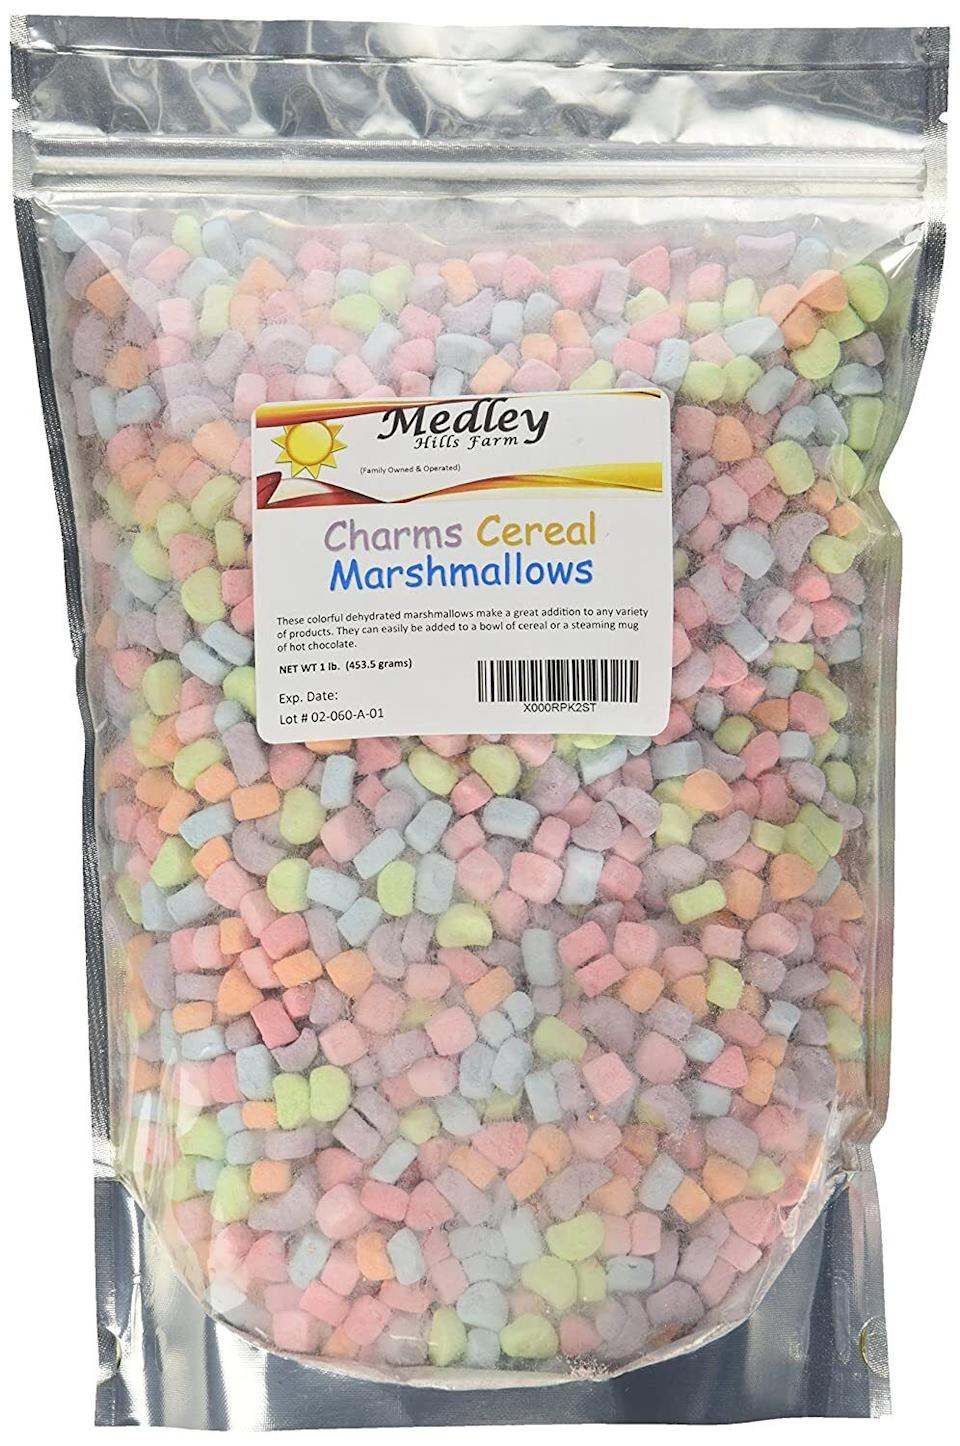 """Get your sweet tooth on with these marshmallows that'll be so good as an afternoon snack or topping for hot cocoa.<br /><br /><strong>Promising review:</strong>""""Buying these charms was one of the best decisions of my life. The bag is twice the size of my head. The marshmallows are aesthetically pleasing and delicious. It's everything I ever wanted in a snack."""" —<a href=""""https://amzn.to/3eVhdIv"""" target=""""_blank"""" rel=""""nofollow noopener noreferrer"""" data-skimlinks-tracking=""""5851345"""" data-vars-affiliate=""""Amazon"""" data-vars-href=""""https://www.amazon.com/gp/customer-reviews/R8EJ8D9GJPM6X?tag=bfnusrat-20&ascsubtag=5851345%2C19%2C34%2Cmobile_web%2C0%2C0%2C16317611"""" data-vars-keywords=""""cleaning"""" data-vars-link-id=""""16317611"""" data-vars-price="""""""" data-vars-product-id=""""20939321"""" data-vars-product-img="""""""" data-vars-product-title="""""""" data-vars-retailers=""""Amazon"""">Amazon Customer<br /><br /></a><a href=""""https://amzn.to/3tWEPRp"""" target=""""_blank"""" rel=""""noopener noreferrer""""><strong>Get it from Amazon for$10.99.</strong></a>"""